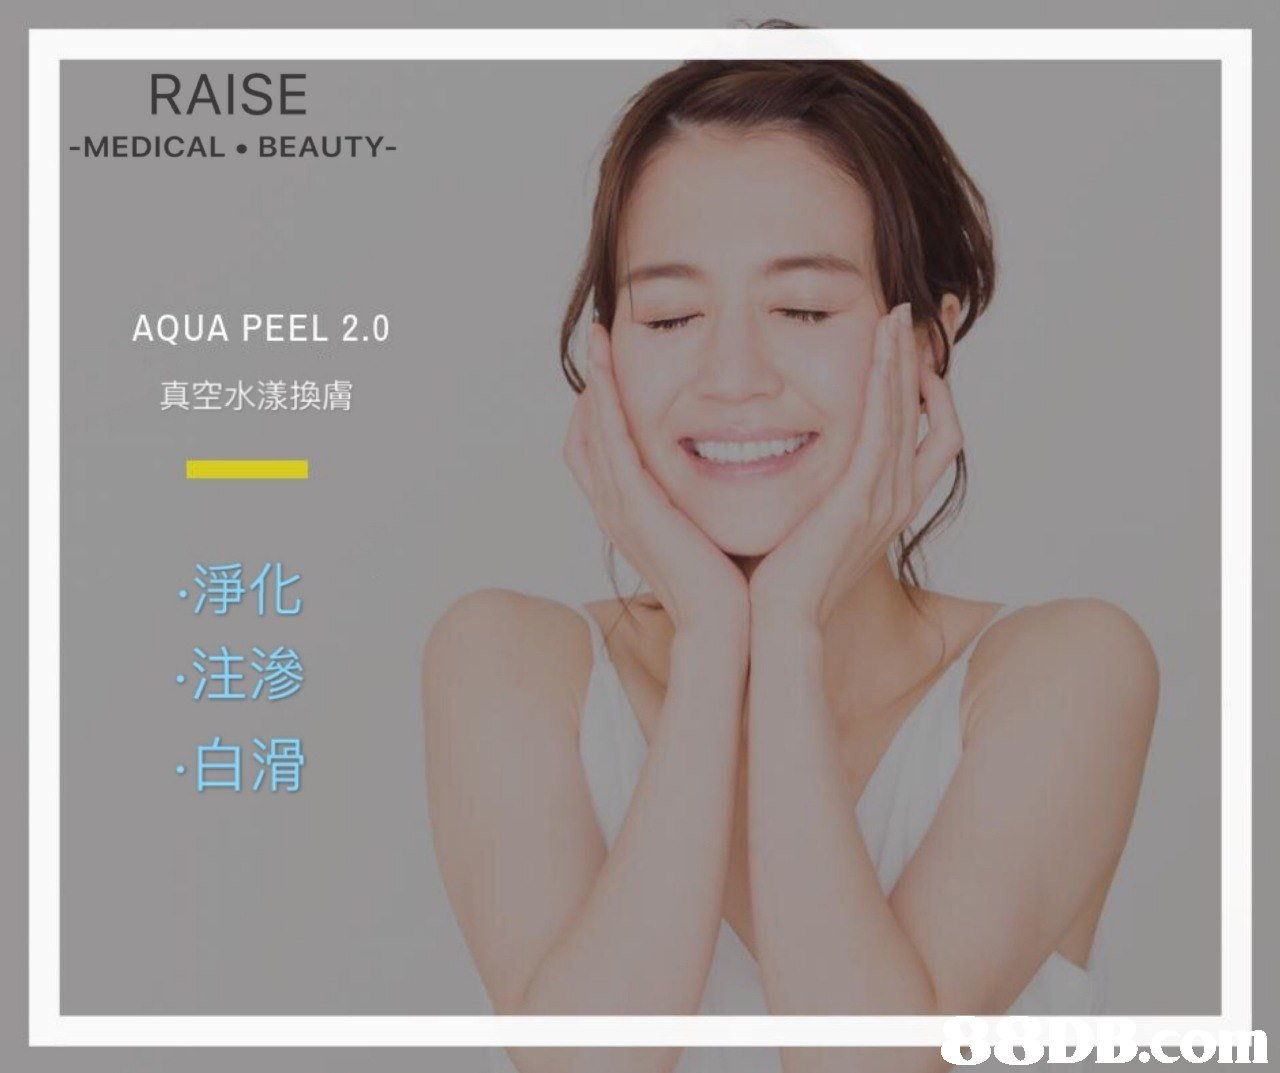 RAISE -MEDICAL BEAUTY- AQUA PEEL 2.0 真空水漾換膚 淨化 注滲 白滑  Face,Skin,Facial expression,Chin,Text